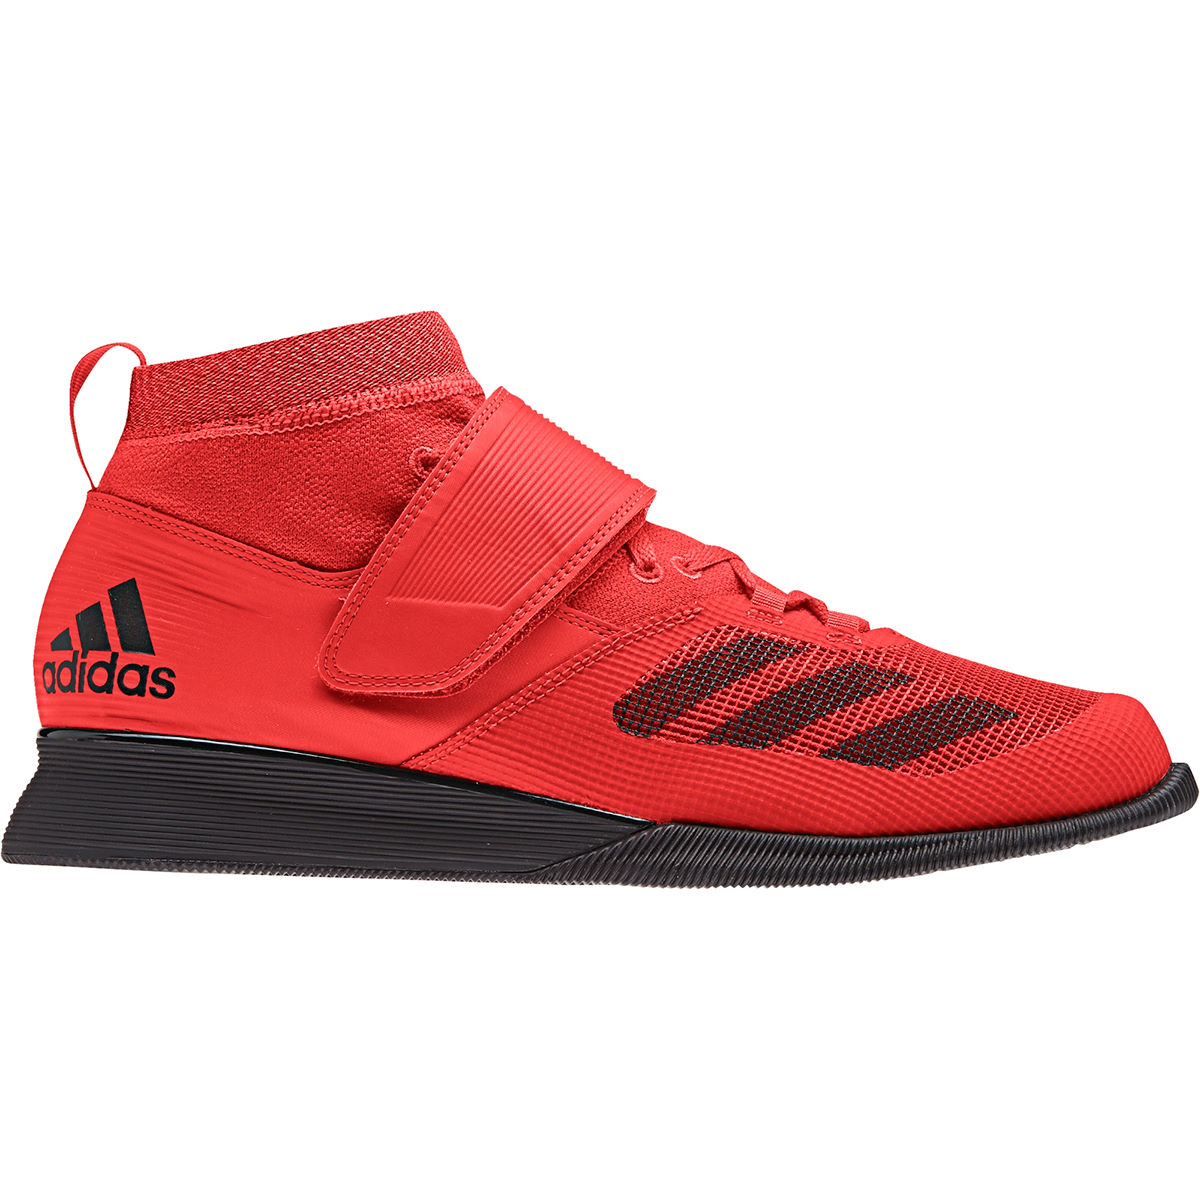 Zapatillas adidas Crazy Power RK - Zapatillas de entrenamiento con pesas